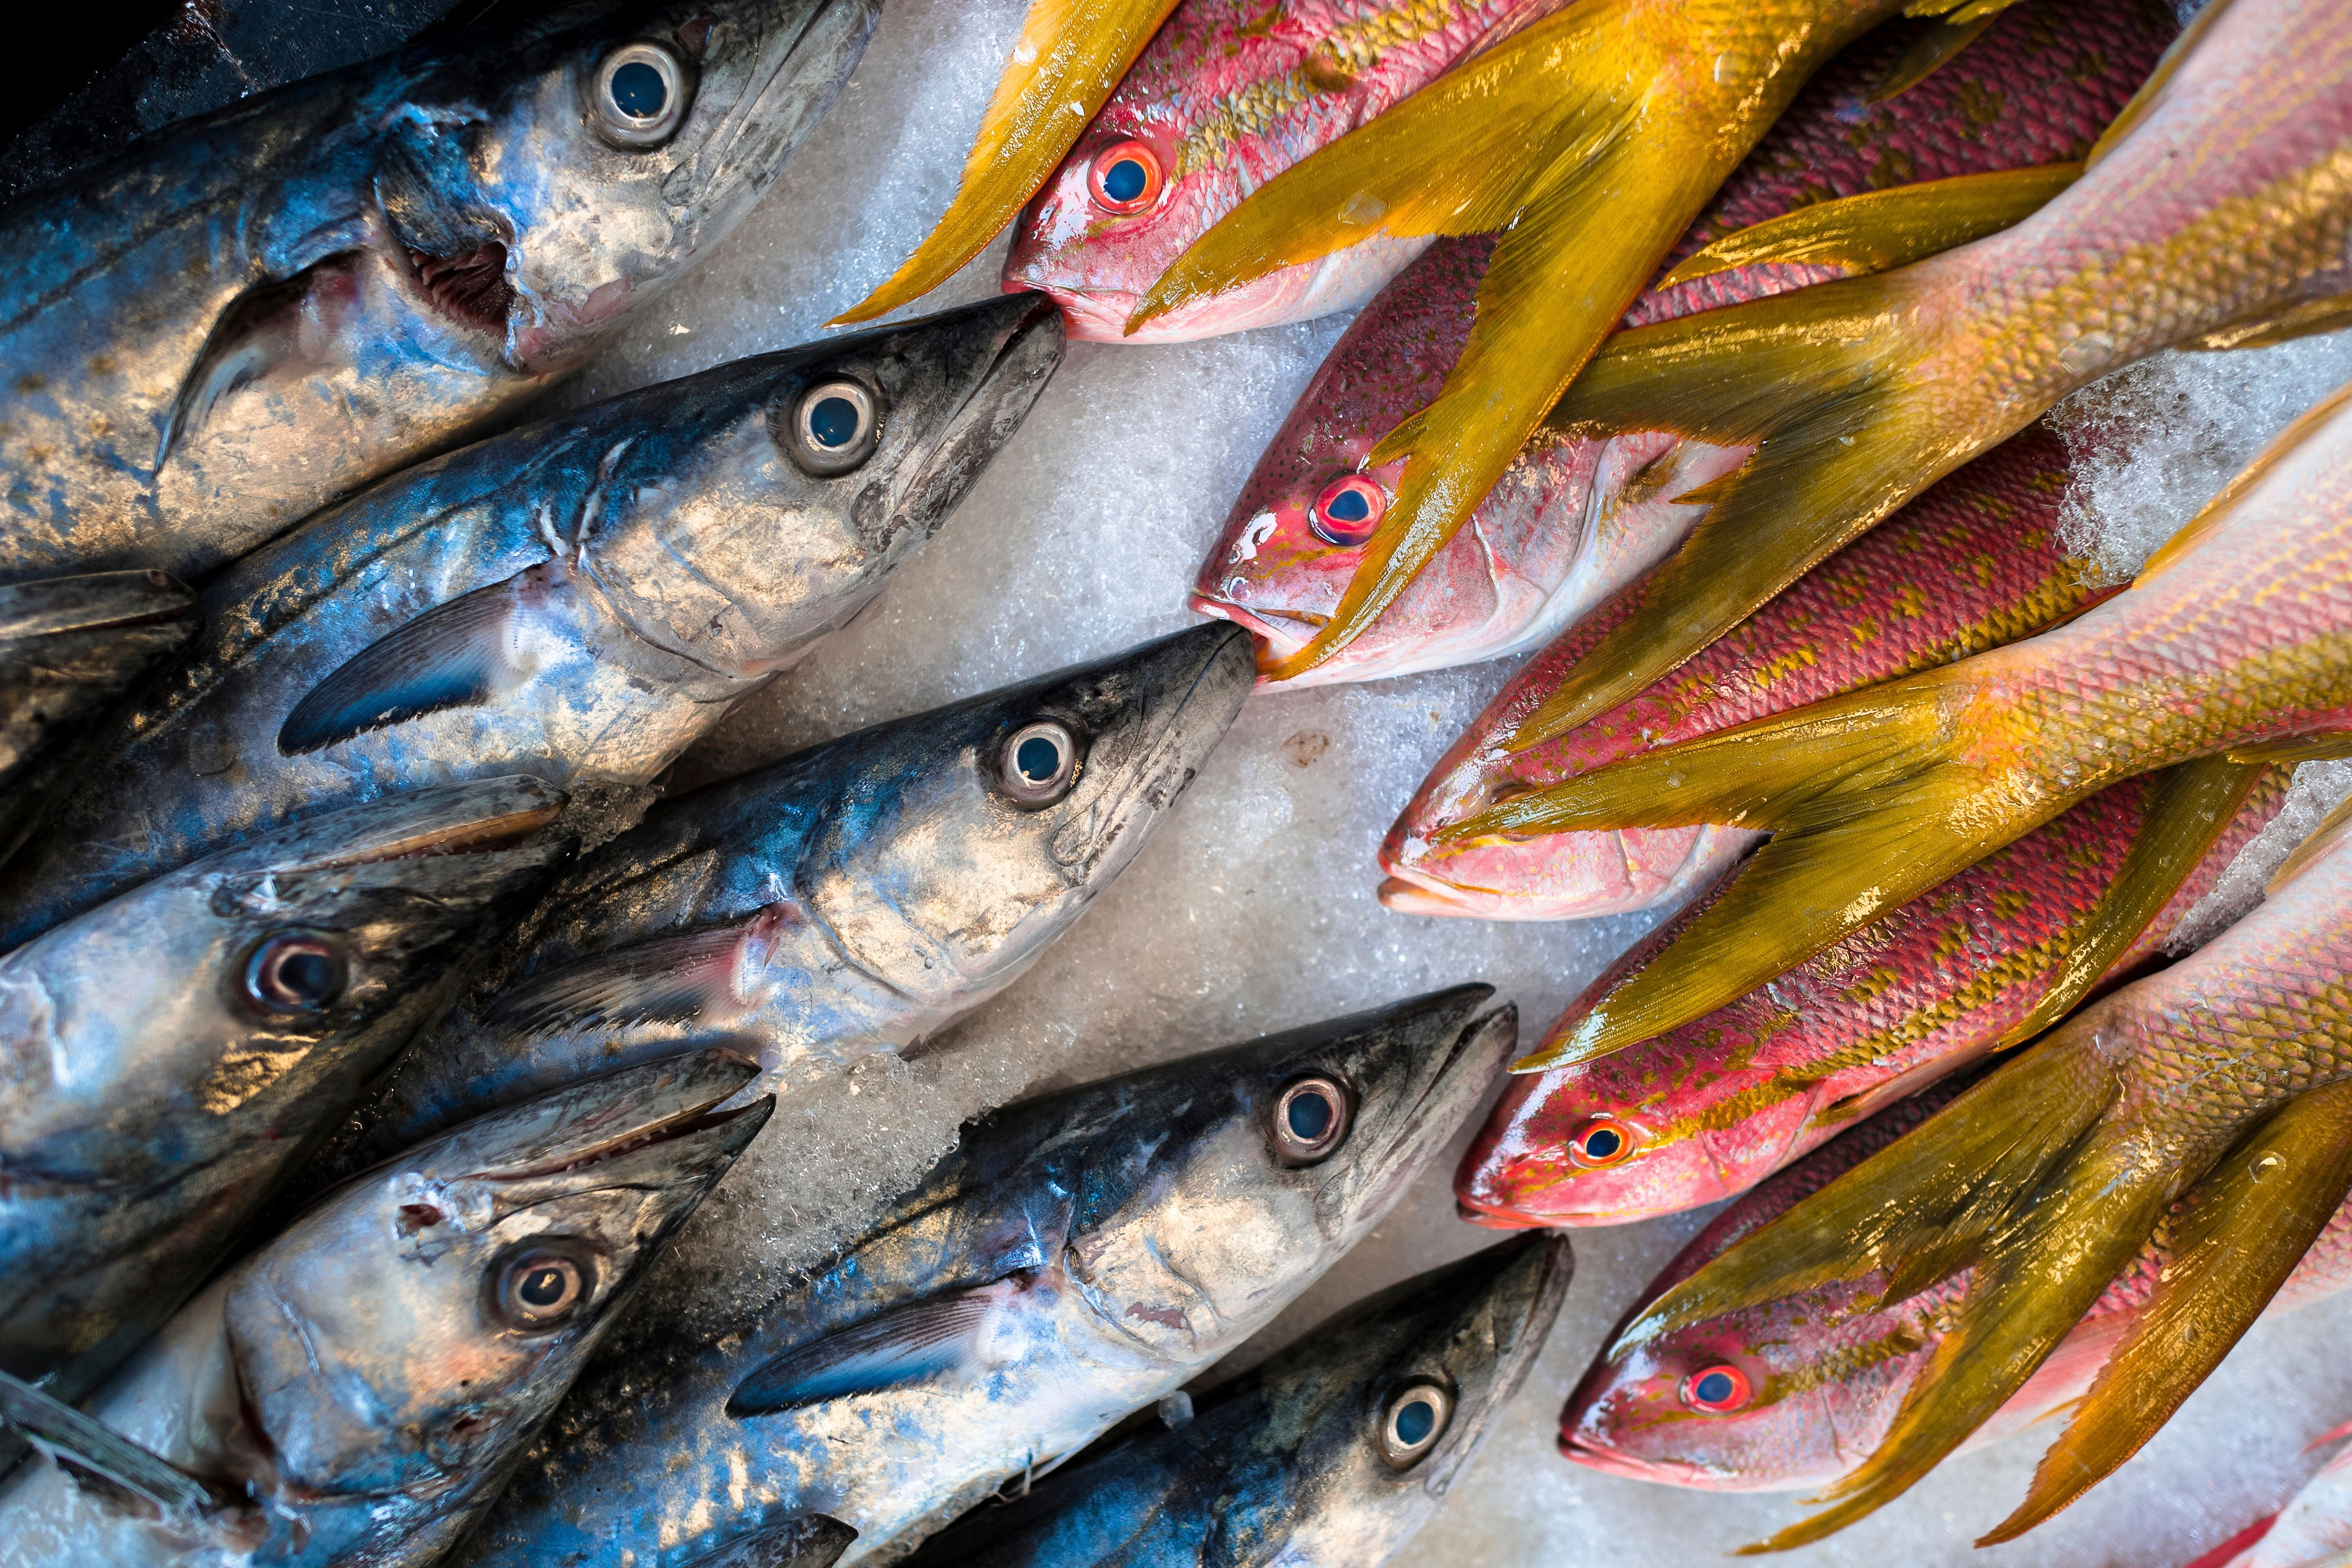 VERACRUZ, MEXICO - JUNE 29: Red snappers and small wahoos are seen for sale at the seafood and fish market in Veracruz, Mexico, 29 June 2015. (Photo by Jan Sochor/Latincontent/Getty Images)